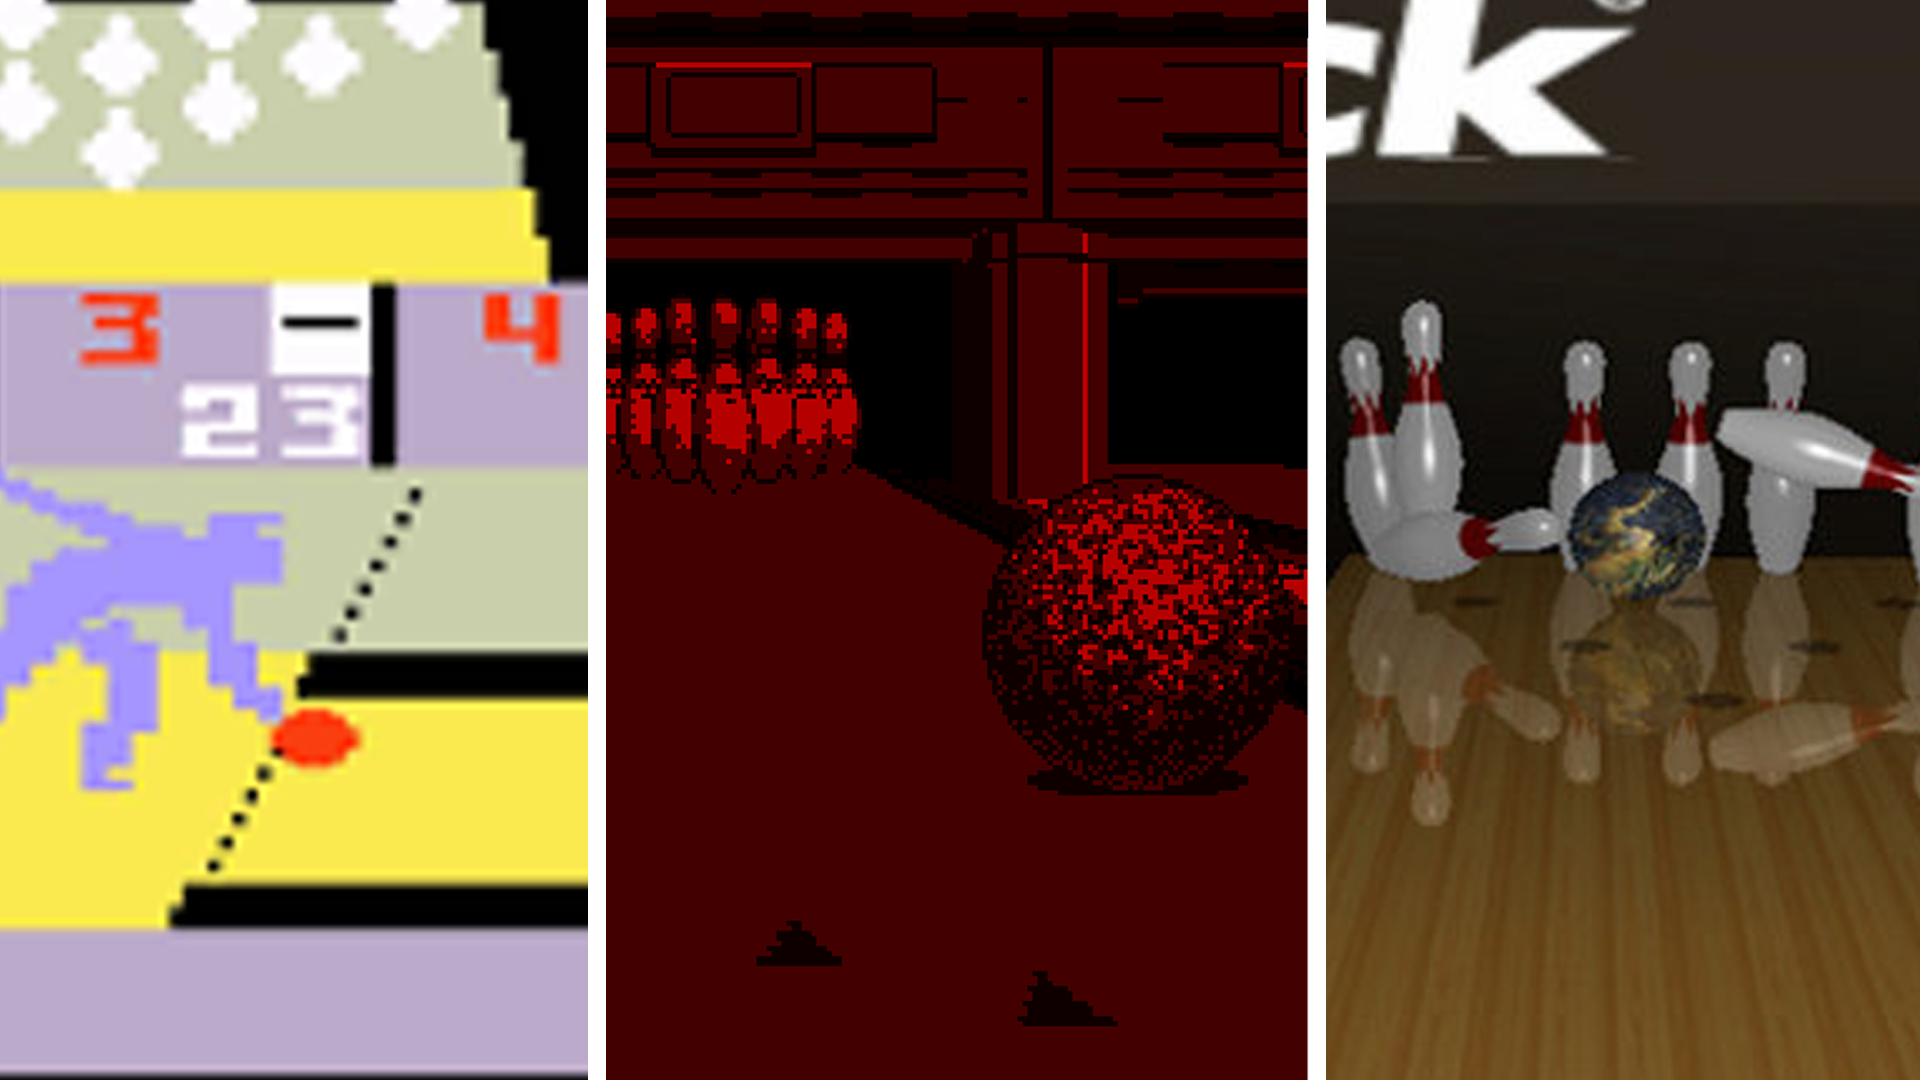 A History Of Bowling In Video Games